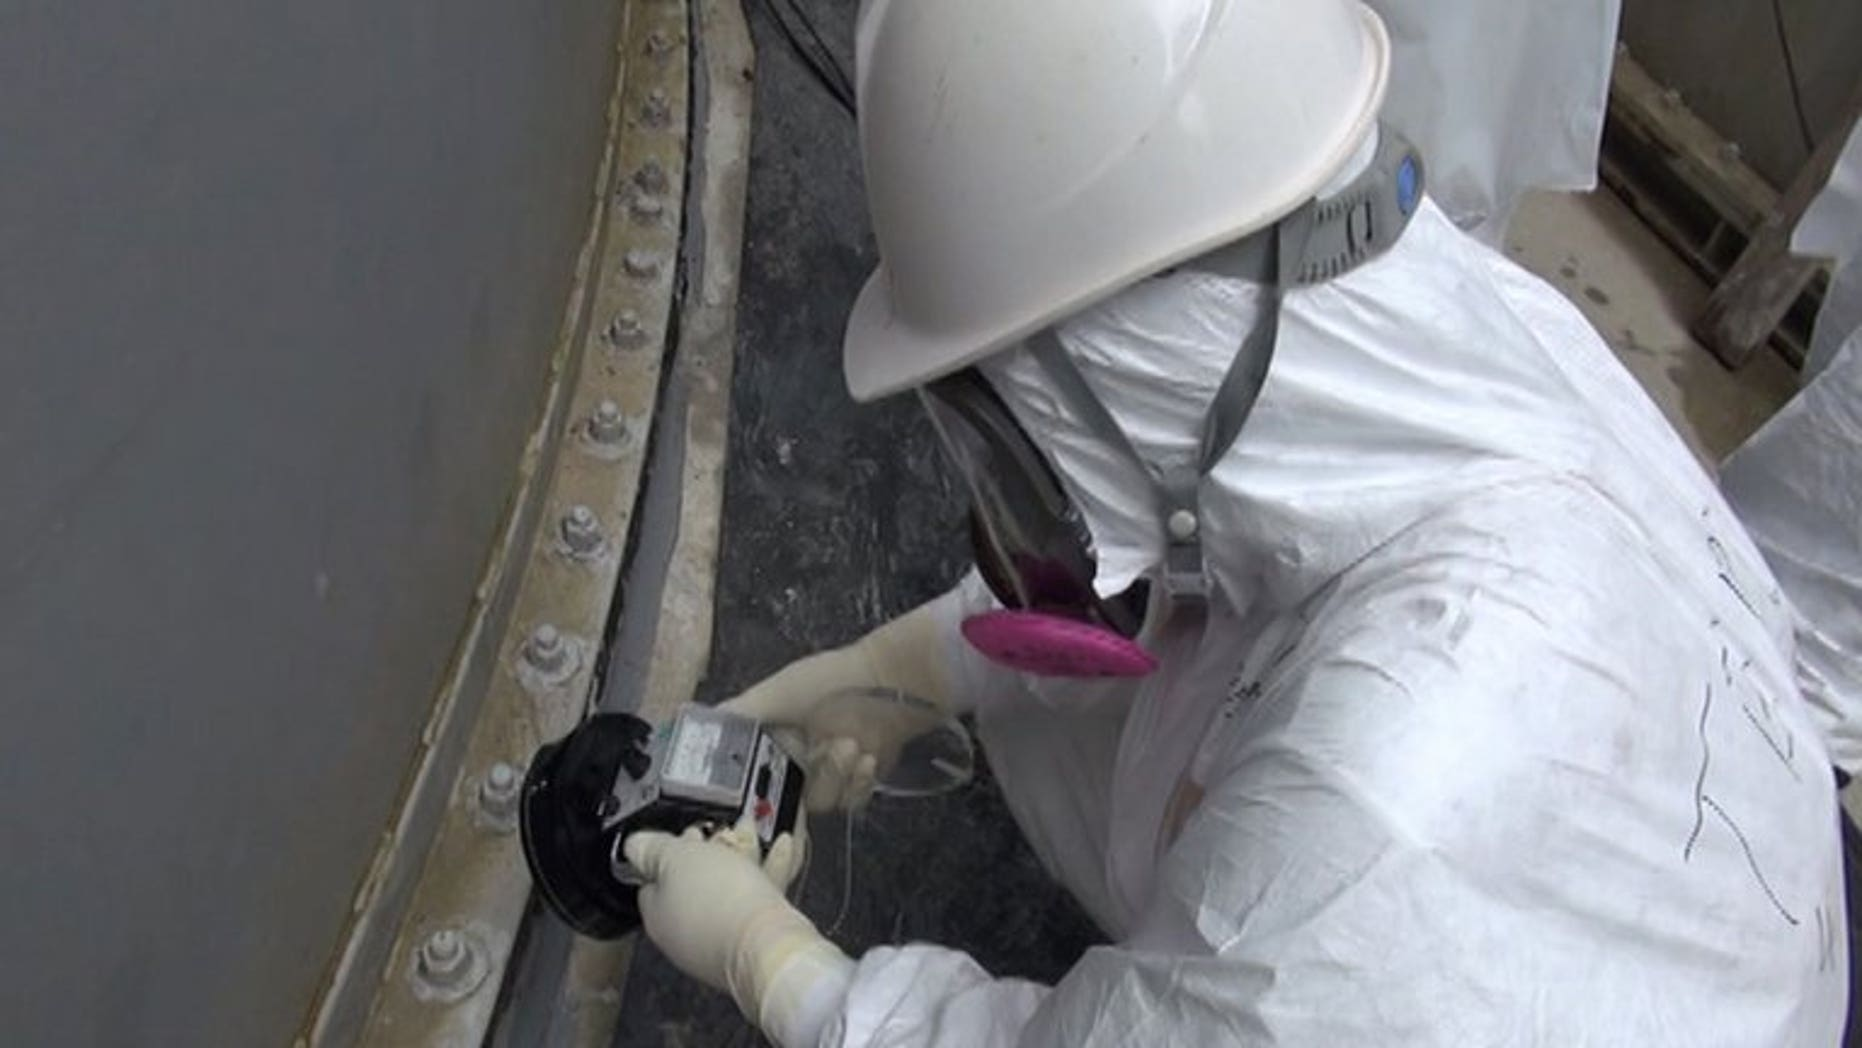 Image taken by TEPCO on September 4, 2013 shows a worker checking radiation levels at a water tank at the Fukushima nuclear power plant. Vapour has begun rising again from a reactor at the plant, more than two-and-a-half years after its core melted down, TEPCO said Friday.